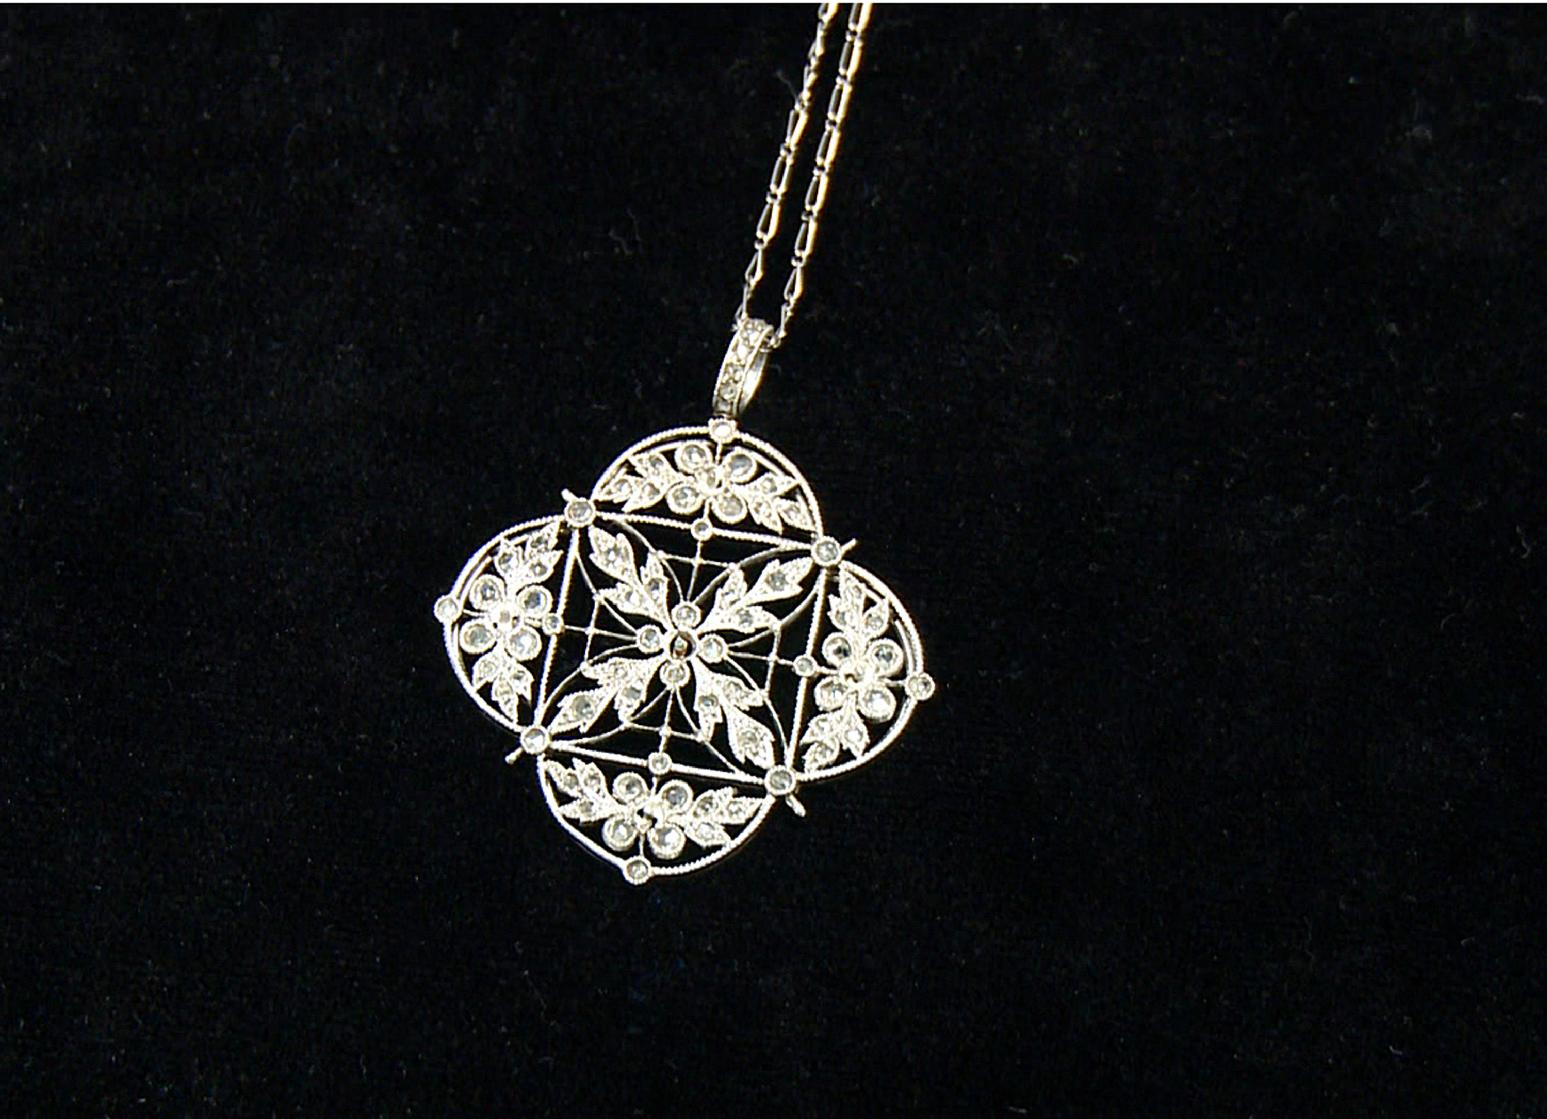 A platinum and diamond necklace recovered from the Titanic is seen in an image made from video. This piece and others begin a three-city tour in Atlanta on Friday, Nov. 16, 2012 and represent the largest collection of jewelry ever on display marking the 100th anniversary of the sinking of the ship. Although single pieces of jewelry have been on display at one or more permanent and traveling exhibits sponsored by Premier Exhibitions Inc., their Atlanta debut is the first time the majority of the collection has been available to the public. (AP Photo/Jpohnny Clark)